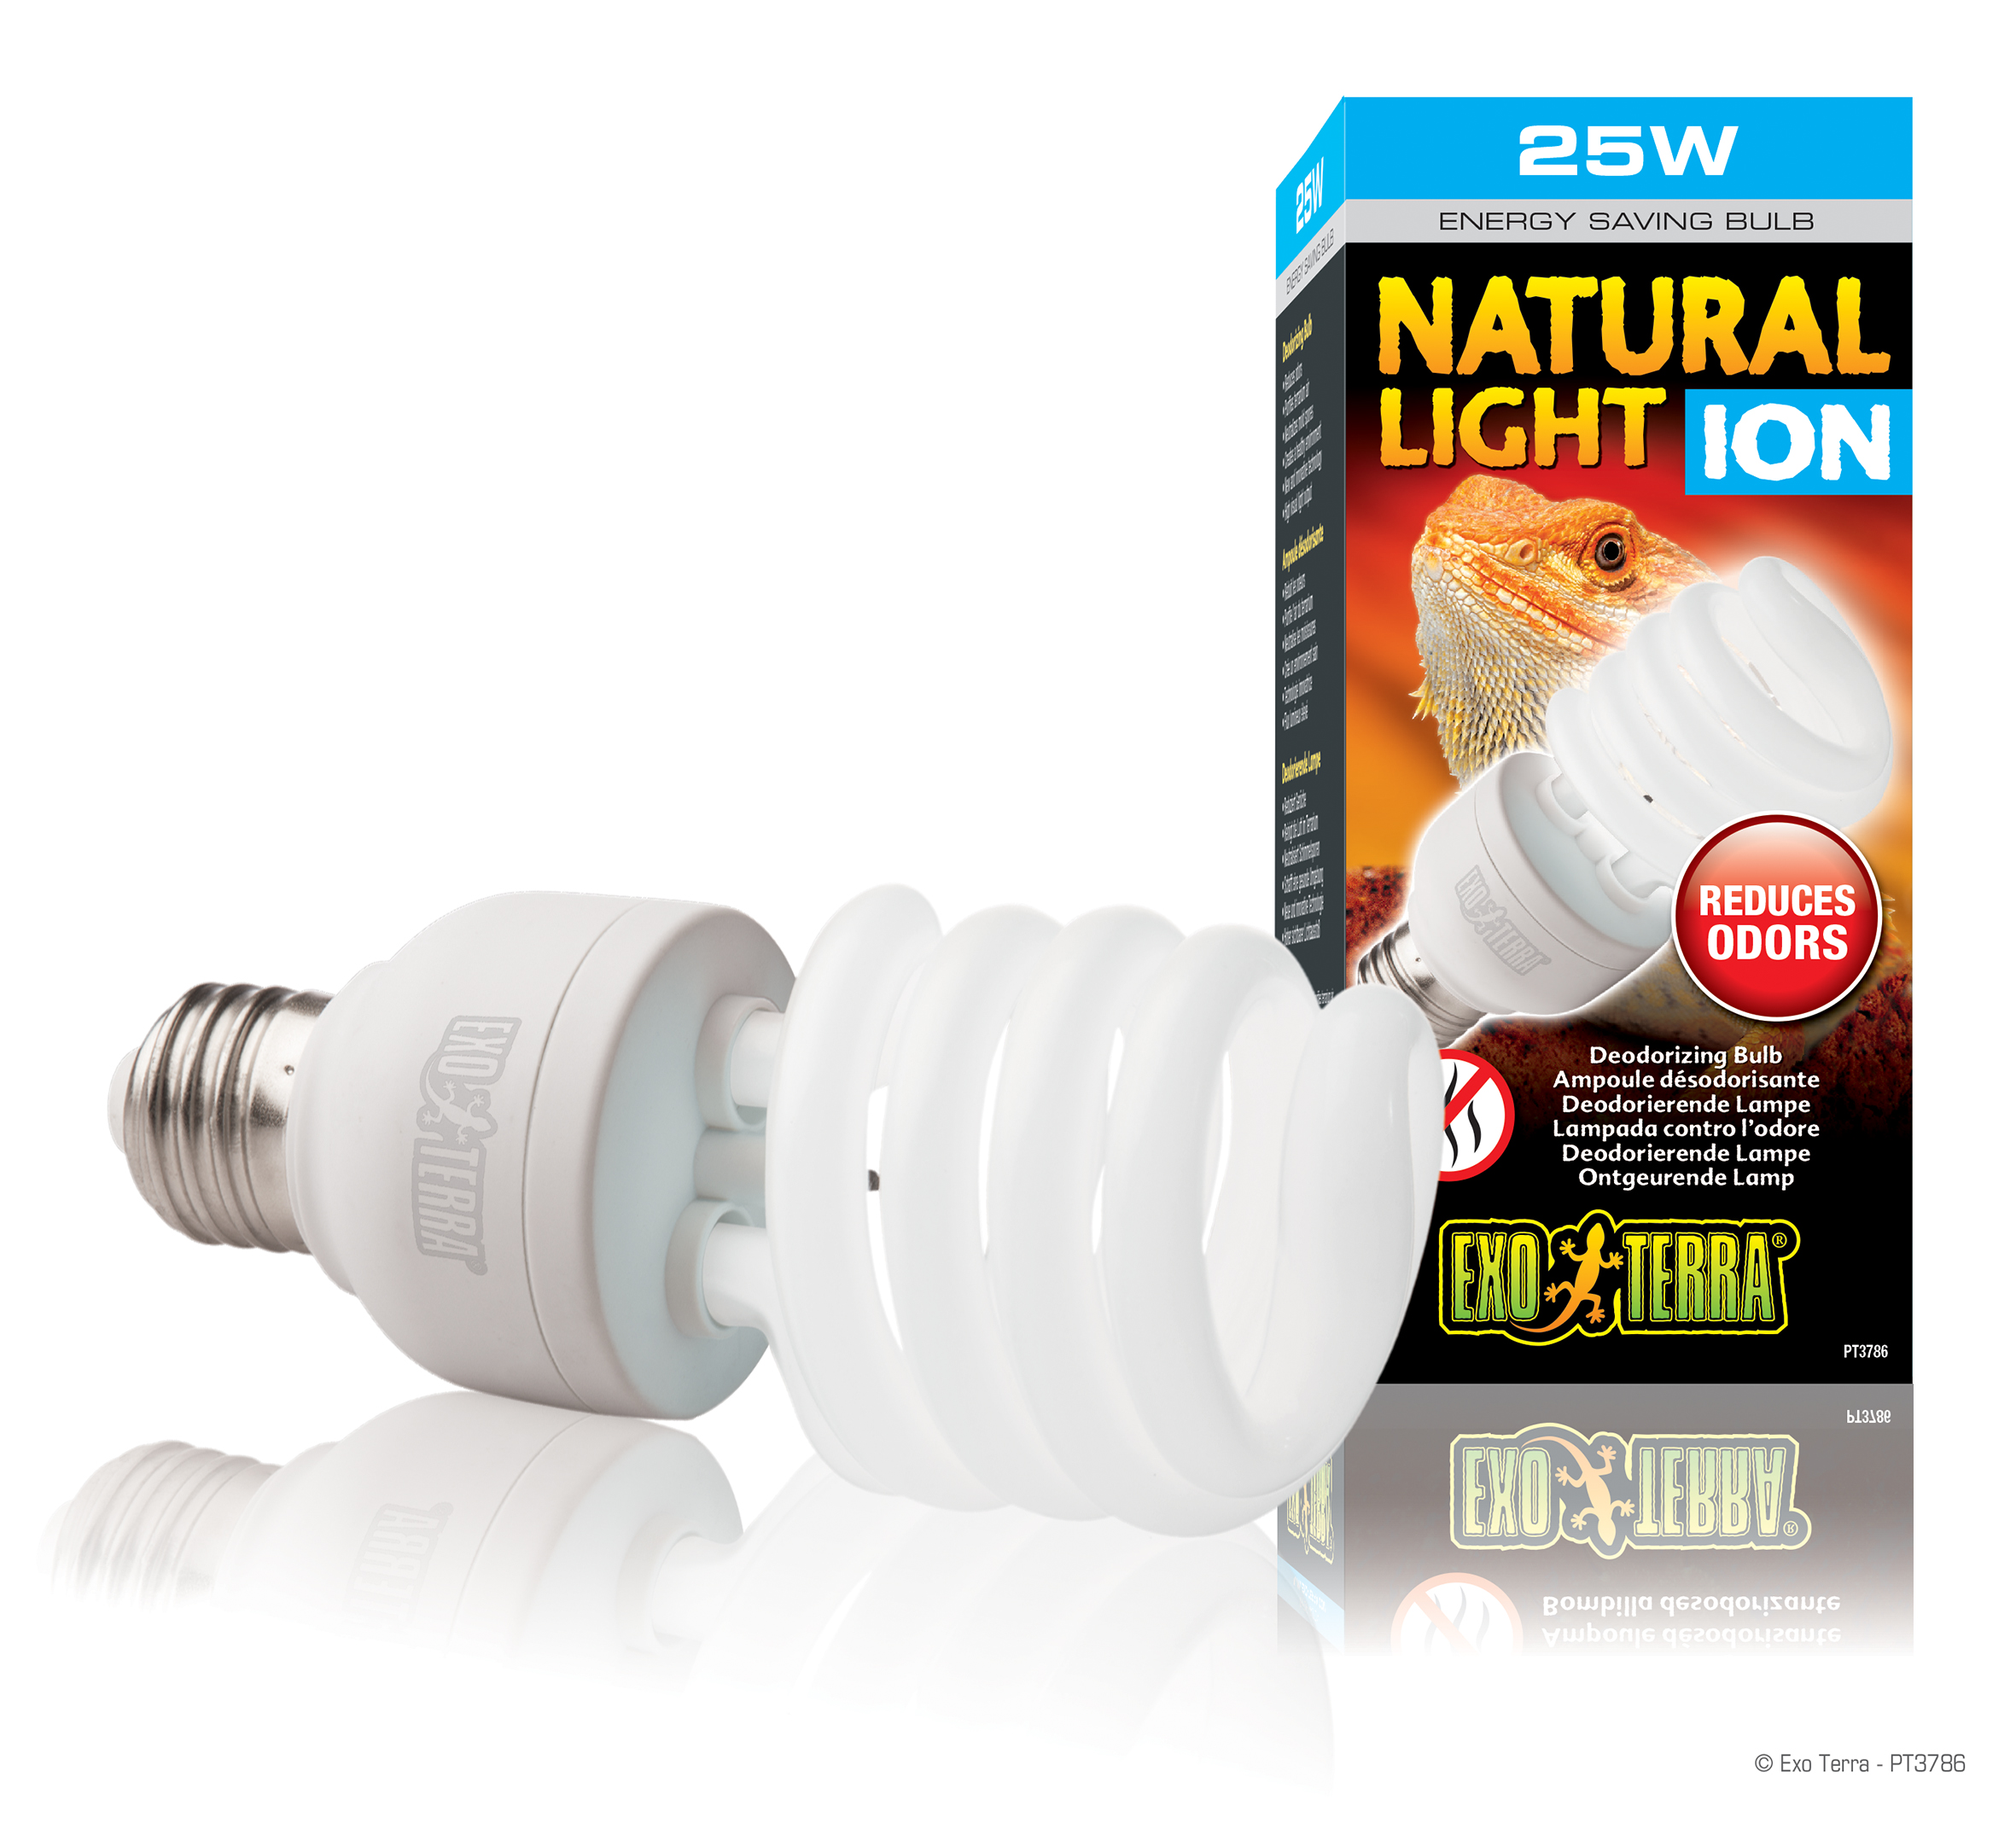 Exo Terra Natural Light Ion Deodorizing Bulb